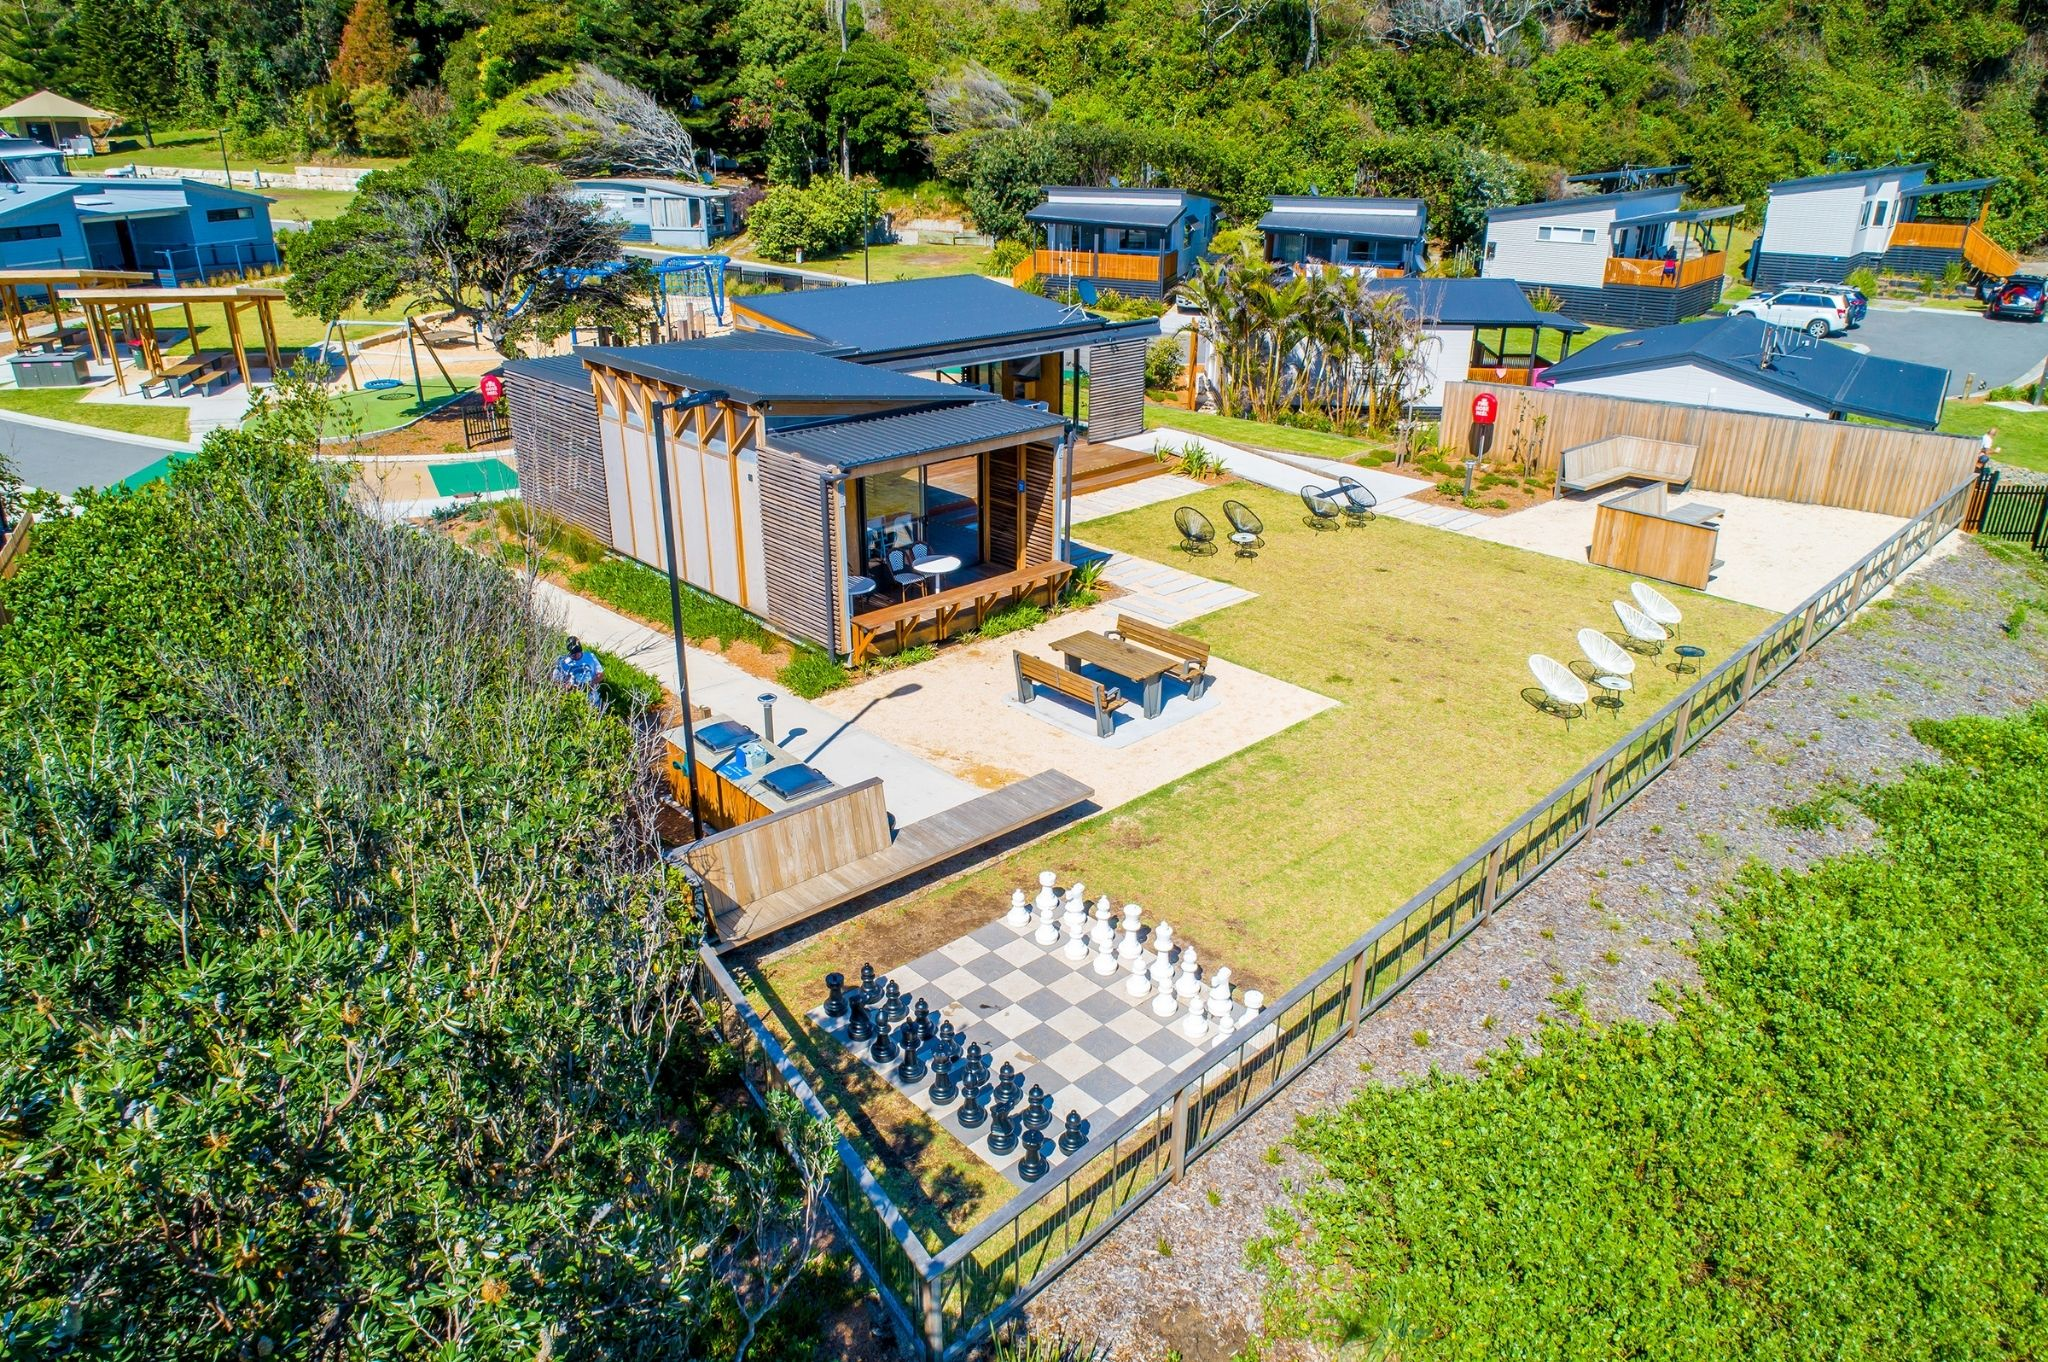 An aerial view of the camp kitchen and cabins at Reflections Holiday Parks Seal Rocks